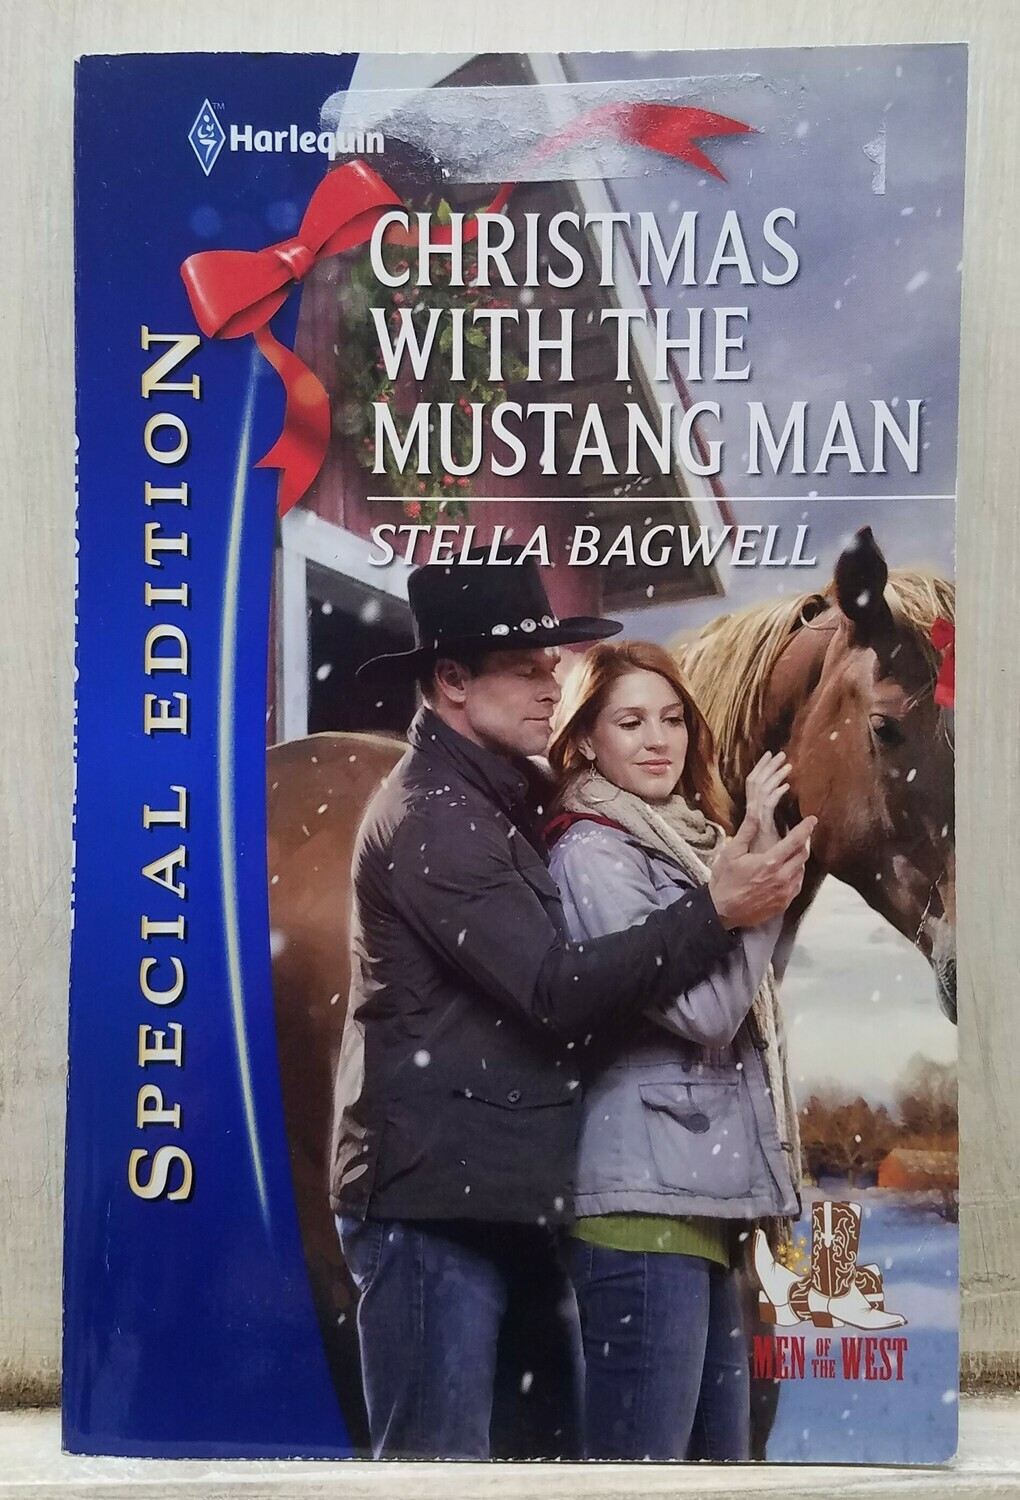 Christmas with the Mustang Man by Stella Bagwell